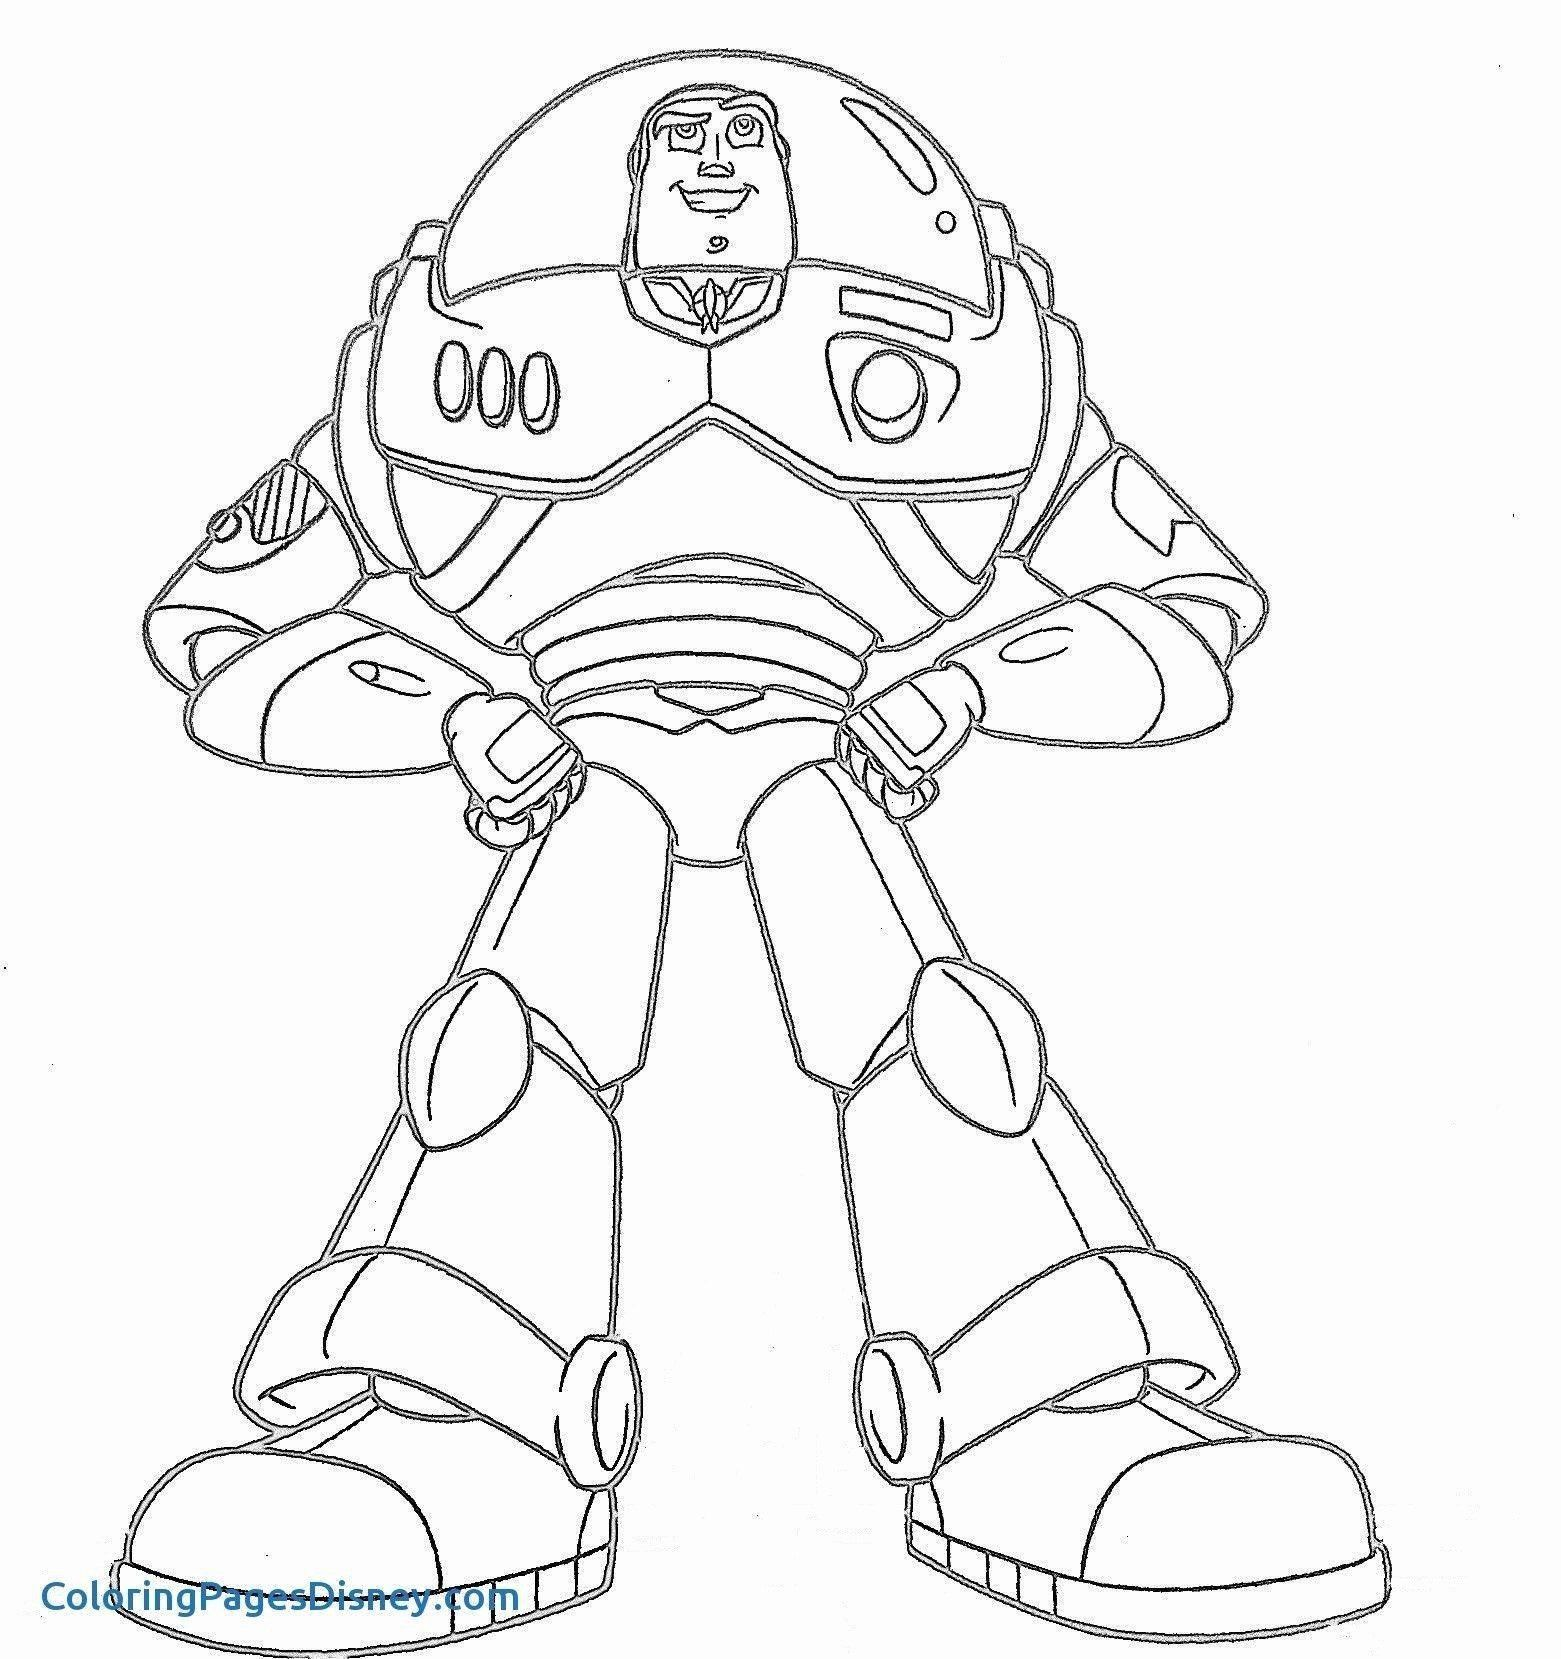 lego toy story 4 coloring pages toy story coloring pages in 2020 toy story coloring lego toy story coloring pages 4